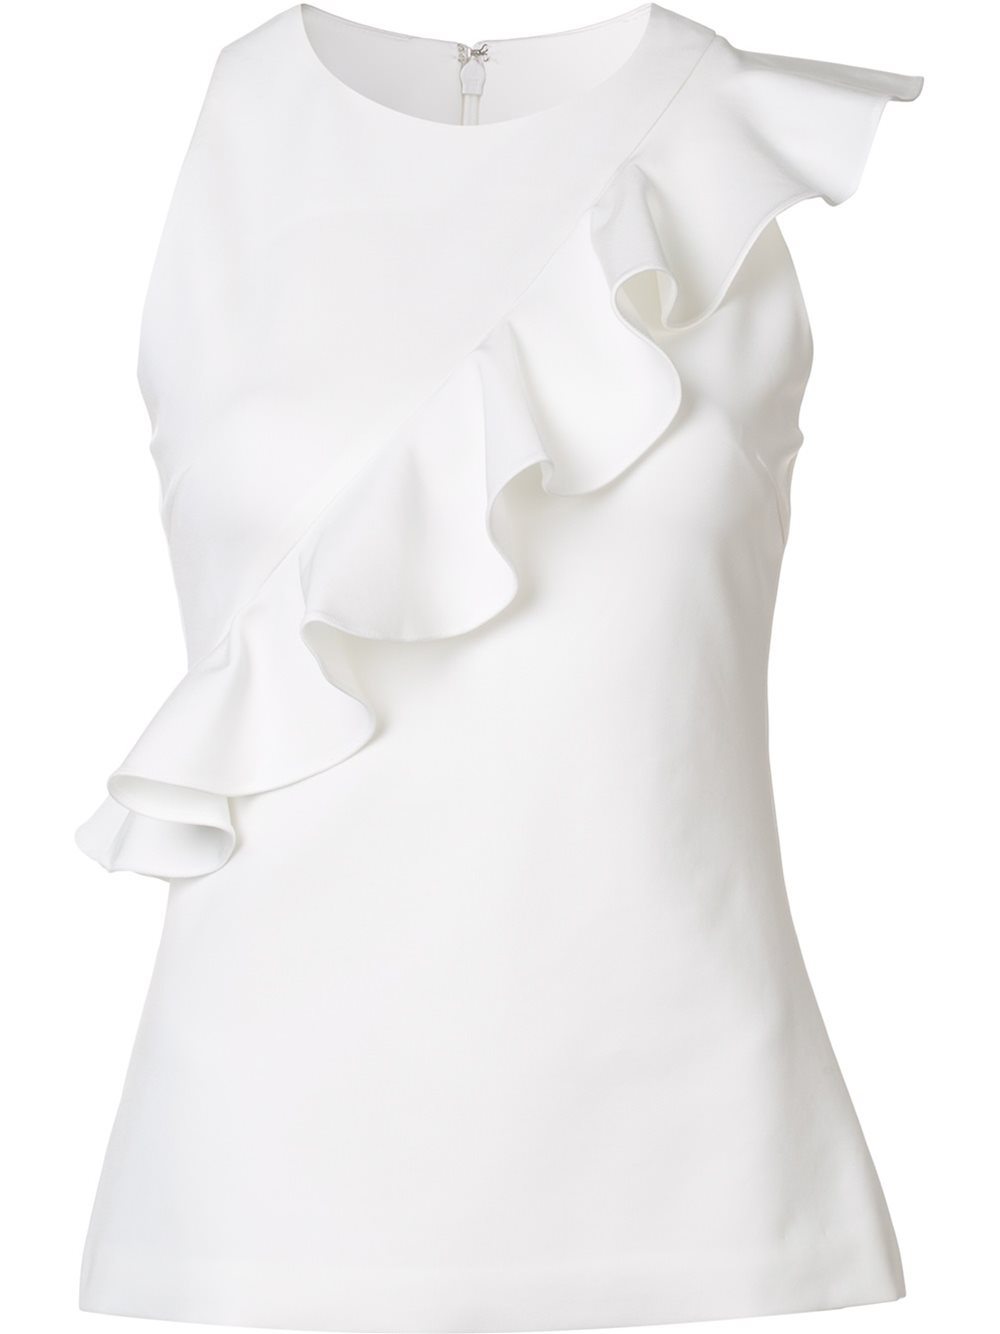 CEO white ruffle top.jpg